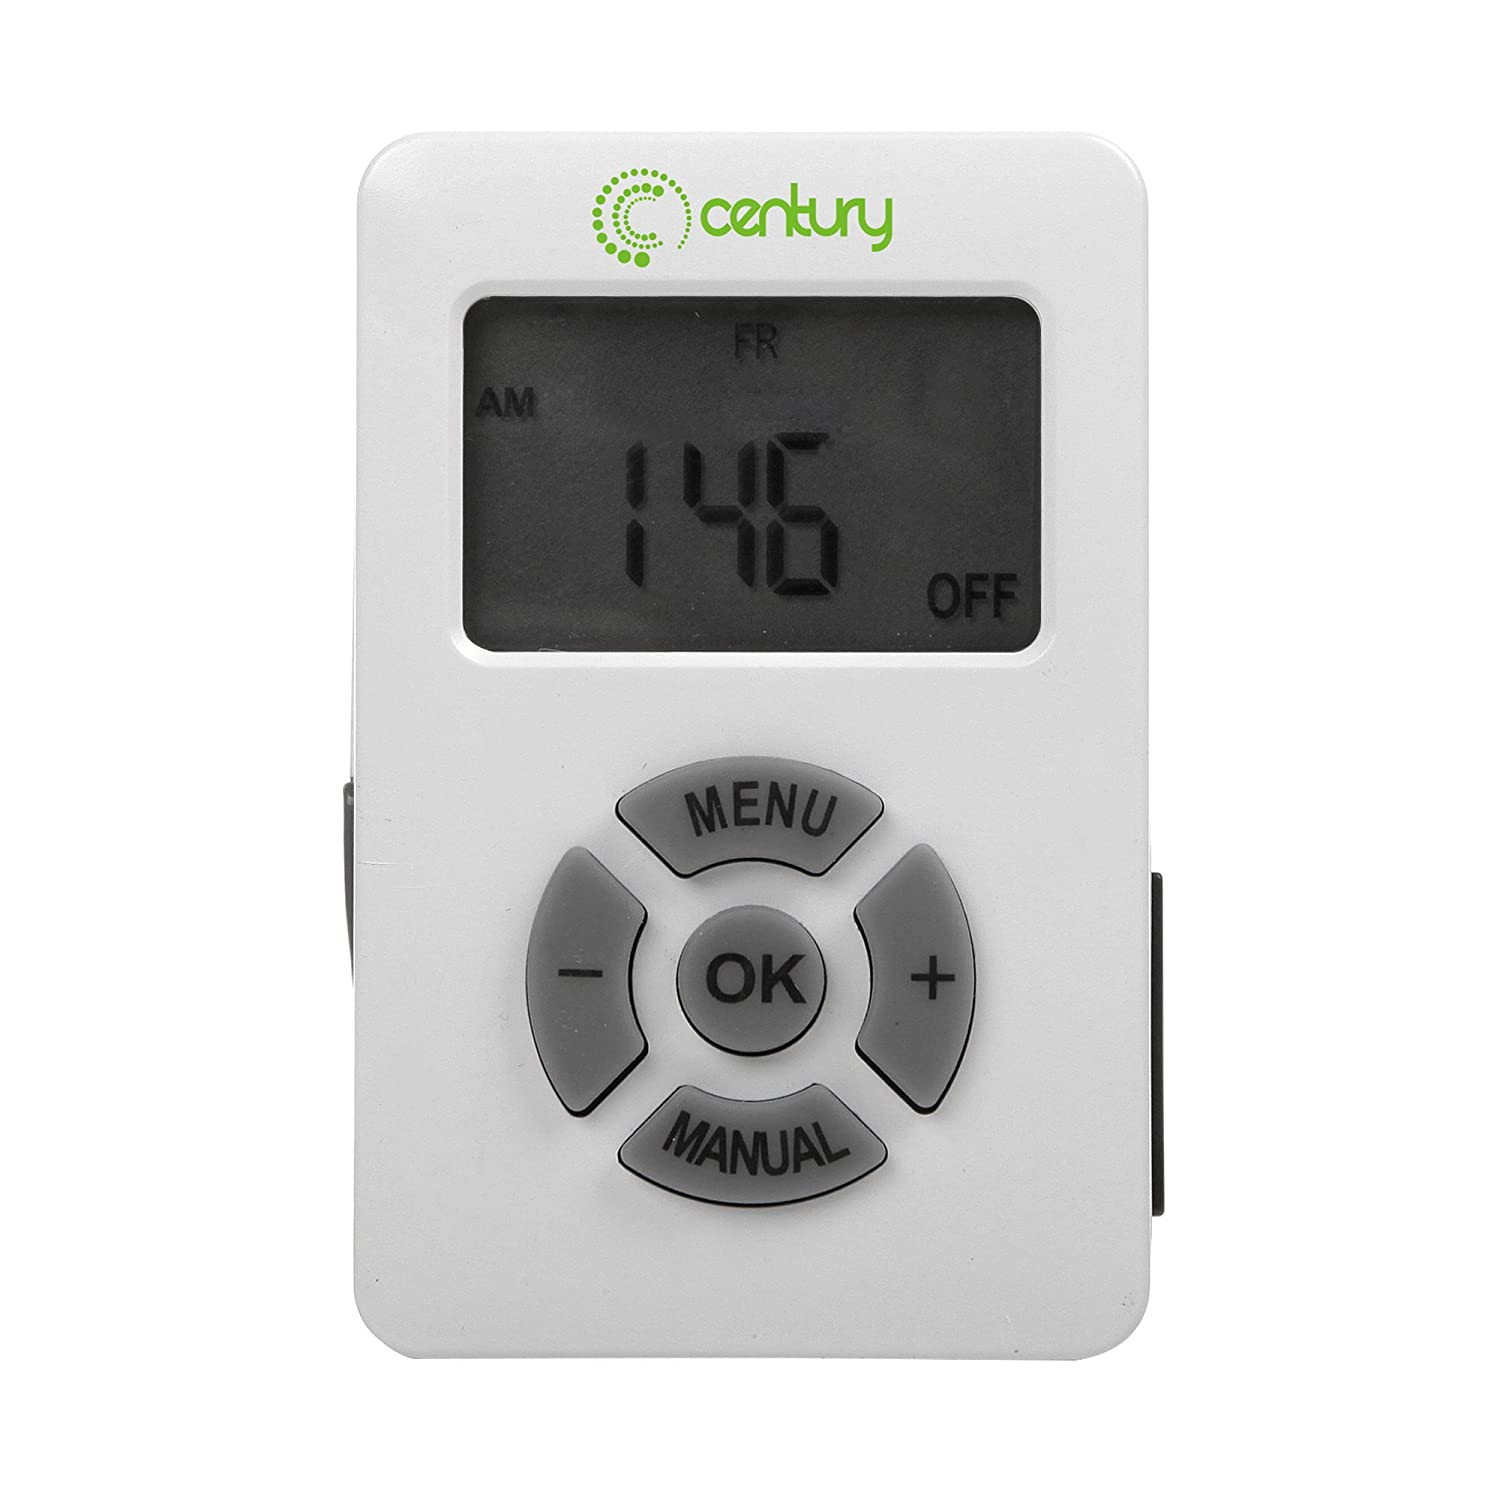 Century 7 Day Programmable Digital Timer With 3-Prong Outlet, One Key Start Countdown Function